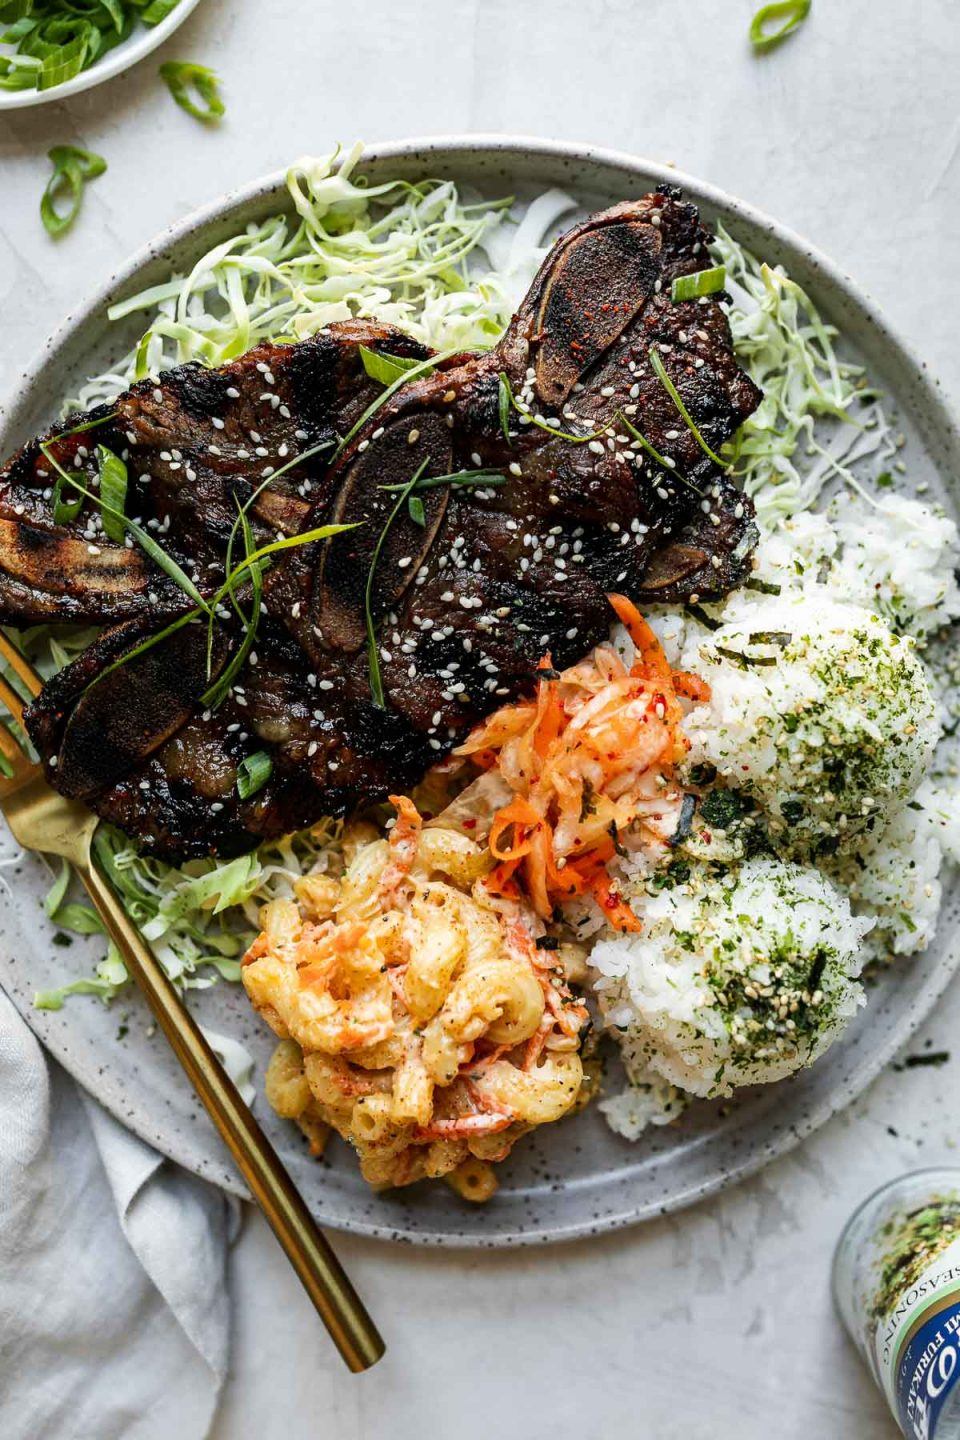 Kalbi served local Hawaiian-style, plated with shredded cabbage & scoops of rice, mac salad, & kimchi. The plate sits atop a cement surface alongside a second plate of kalbi, nori furikake seasoning, a gray linen napkin, & a plate of thin sliced green onions.